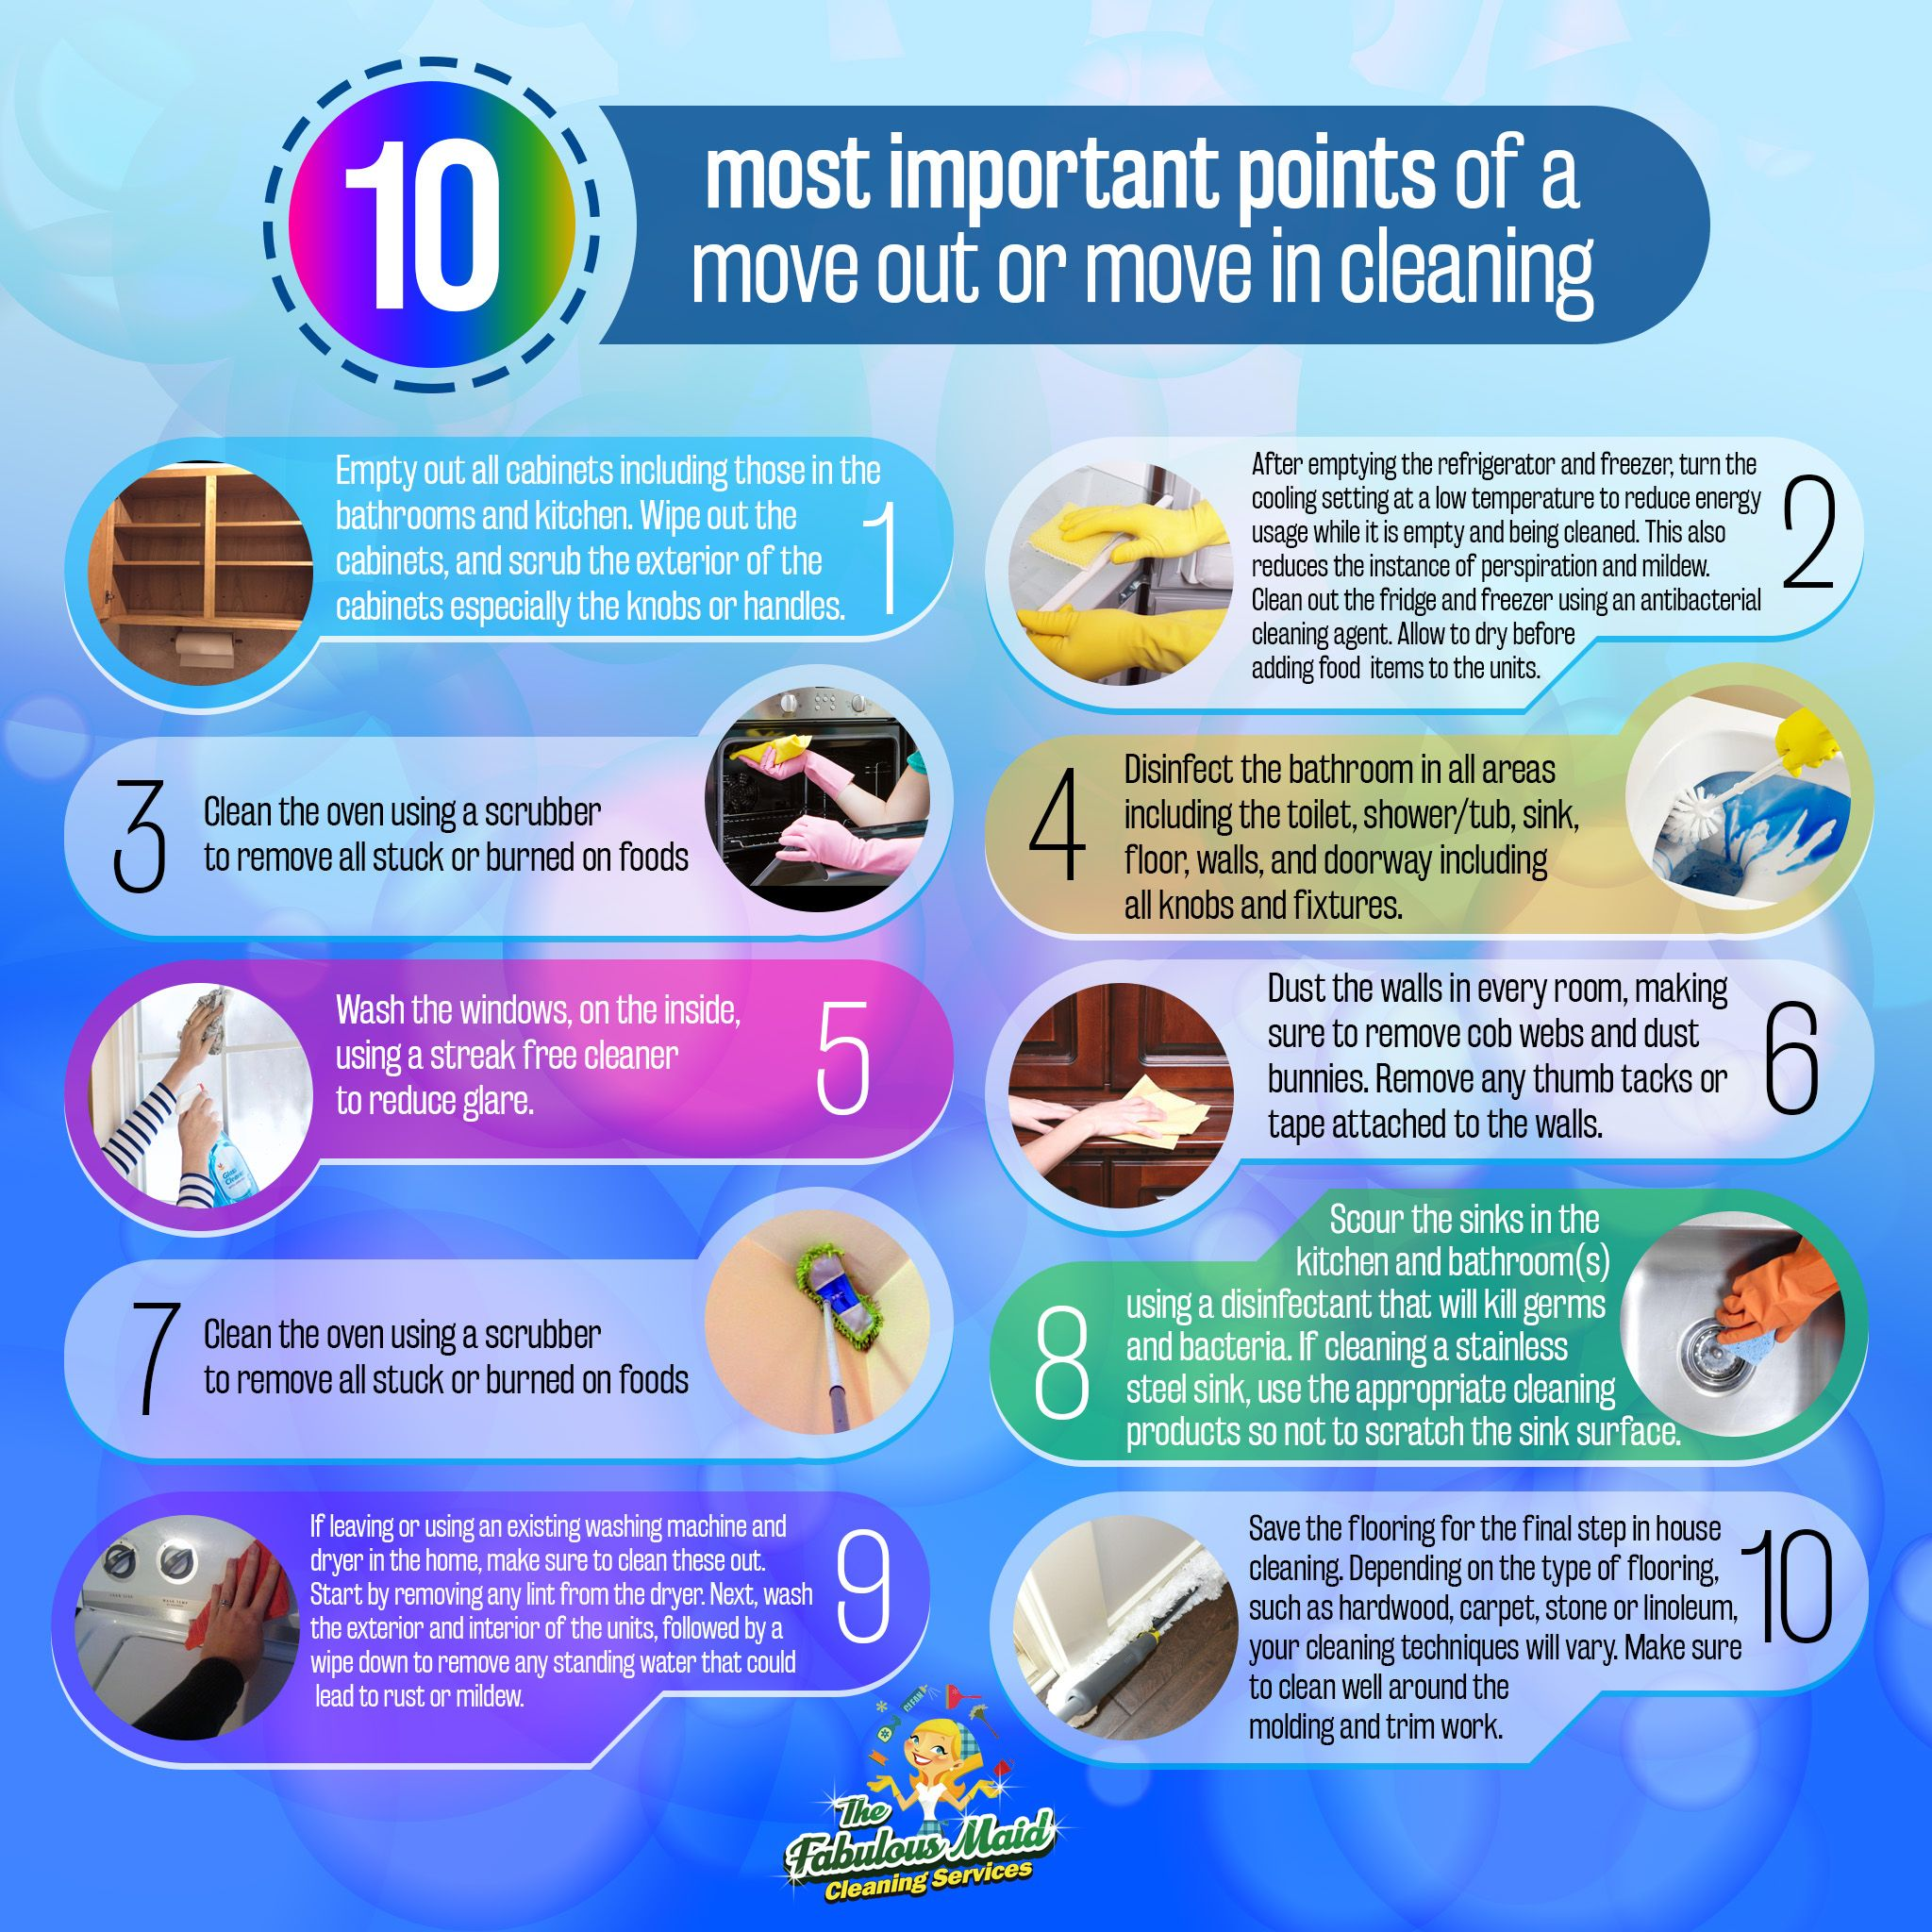 10 most important points of a move out or move in cleaning ...